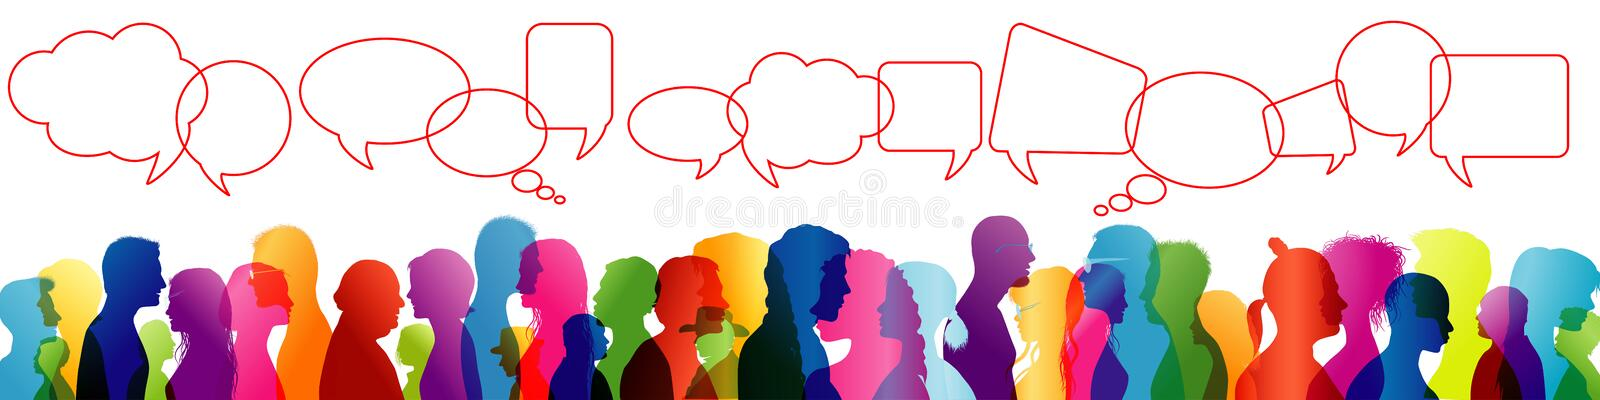 Crowd talking. Speech between people. To communicate. Group of people colored profile silhouette. Speech bubble. Speaking. Illustration with crowd chatting stock illustration